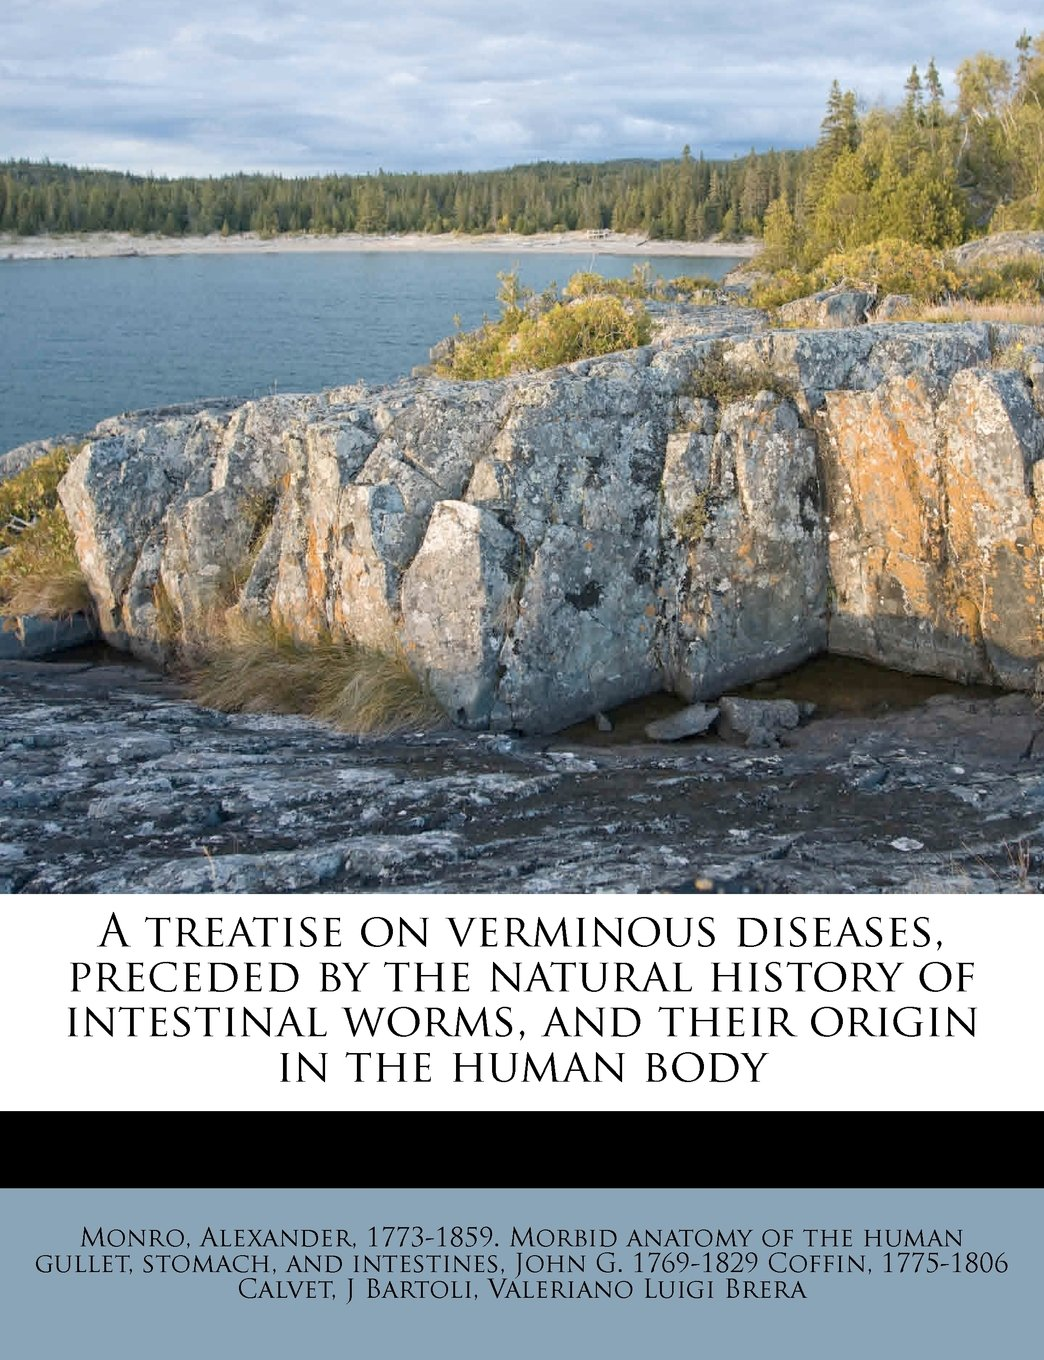 Read Online A treatise on verminous diseases, preceded by the natural history of intestinal worms, and their origin in the human body pdf epub